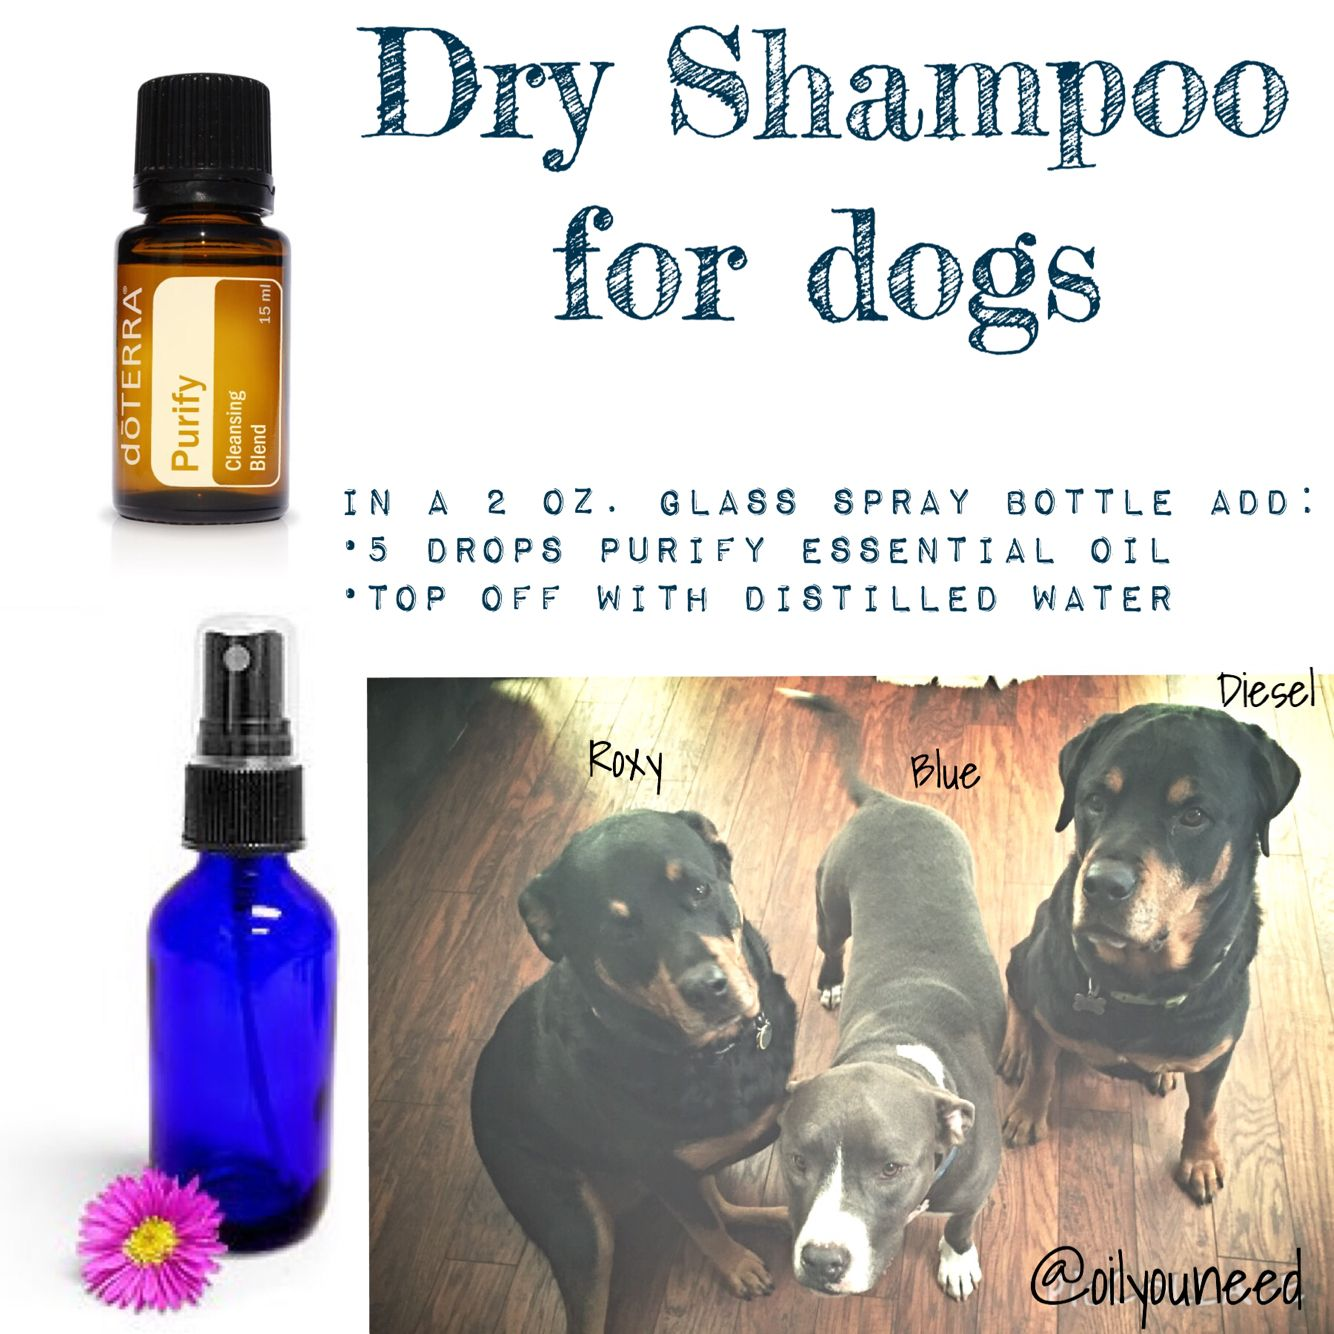 Dry Shampoo For Dogs Dōterra Also Works For Purifying Bedding Pillow Laundry Shoes For Essential Oil Recipes Essential Oils Dogs Are Essential Oils Safe